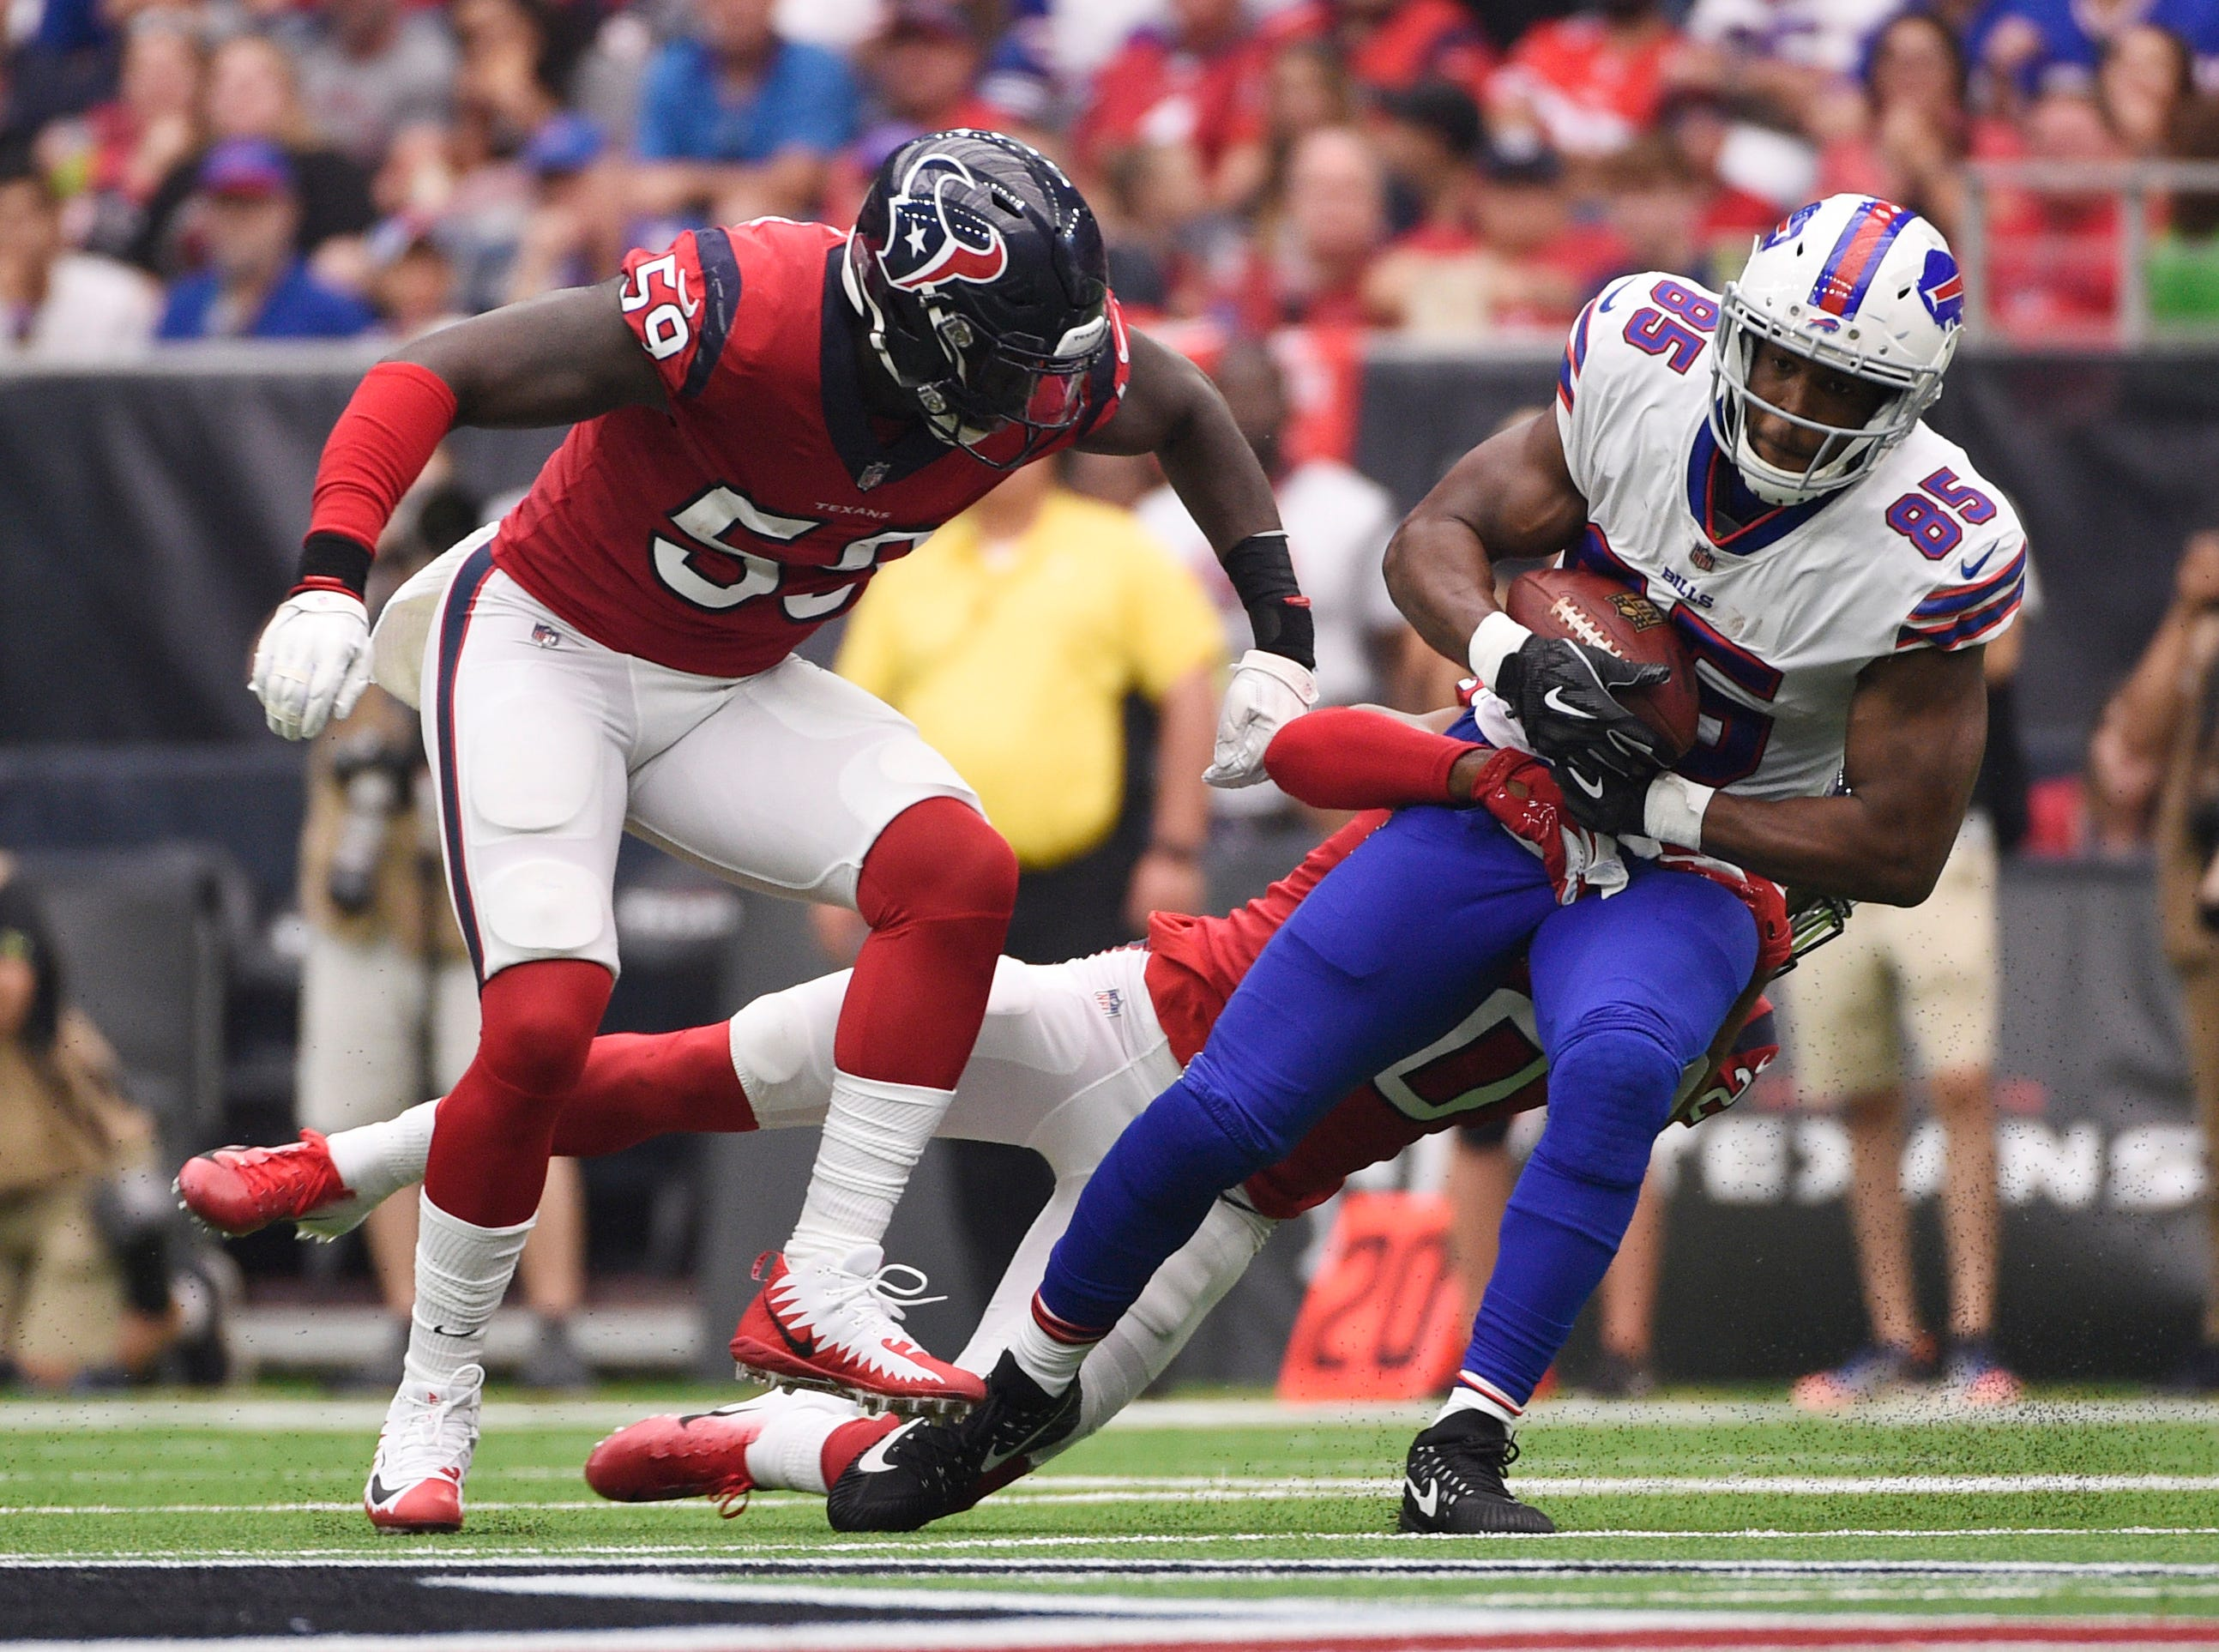 Buffalo Bills tight end Charles Clay (85) is hit by Houston Texans defensive back Justin Reid (20) after a catch during the first quarter of an NFL football game, Sunday, Oct. 14, 2018, in Houston. (AP Photo/Eric Christian Smith)